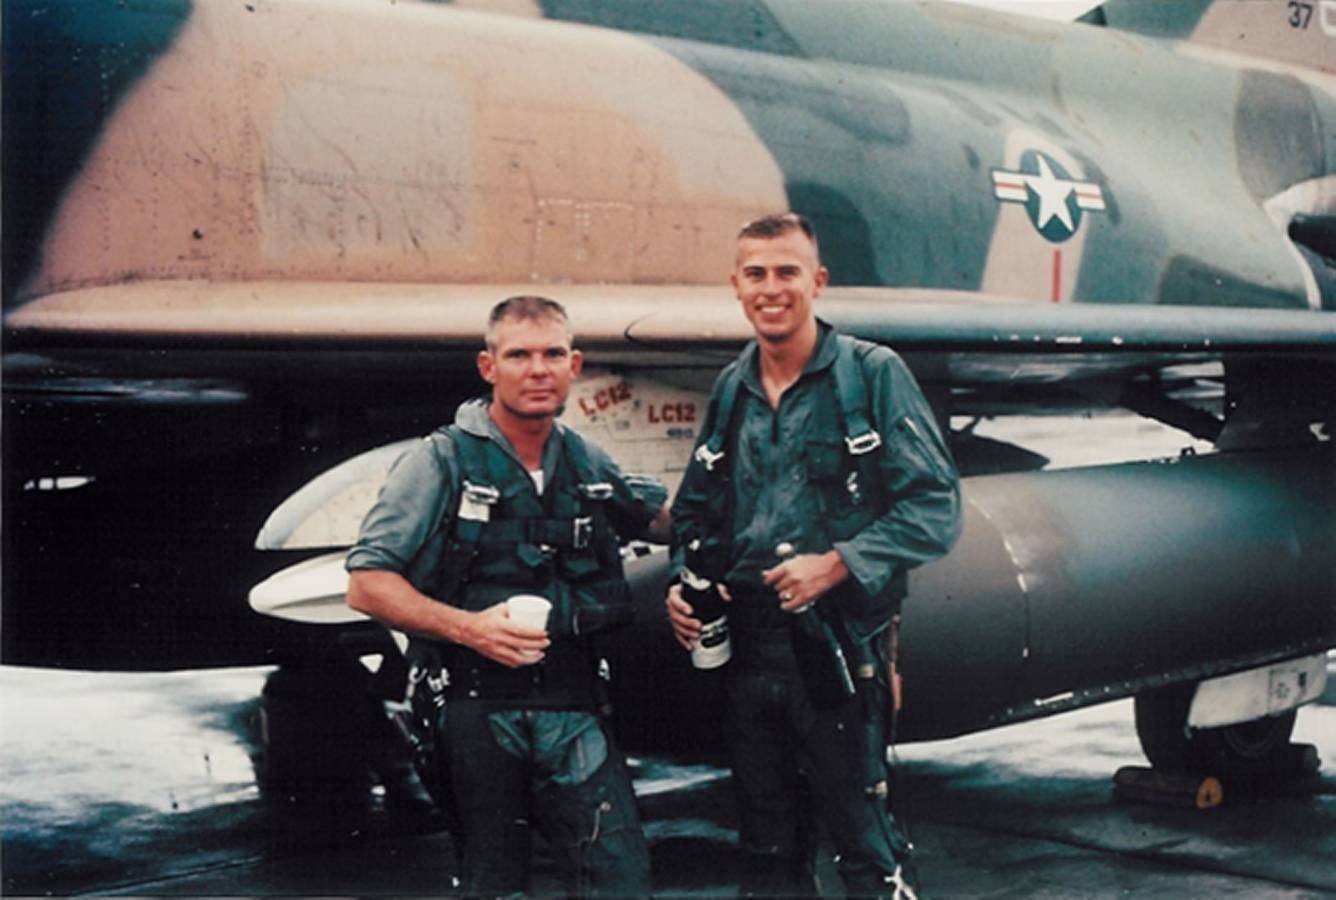 Bob Pardo and Steve Wayne, in Vietnam with F4 used in Pardo's Push.